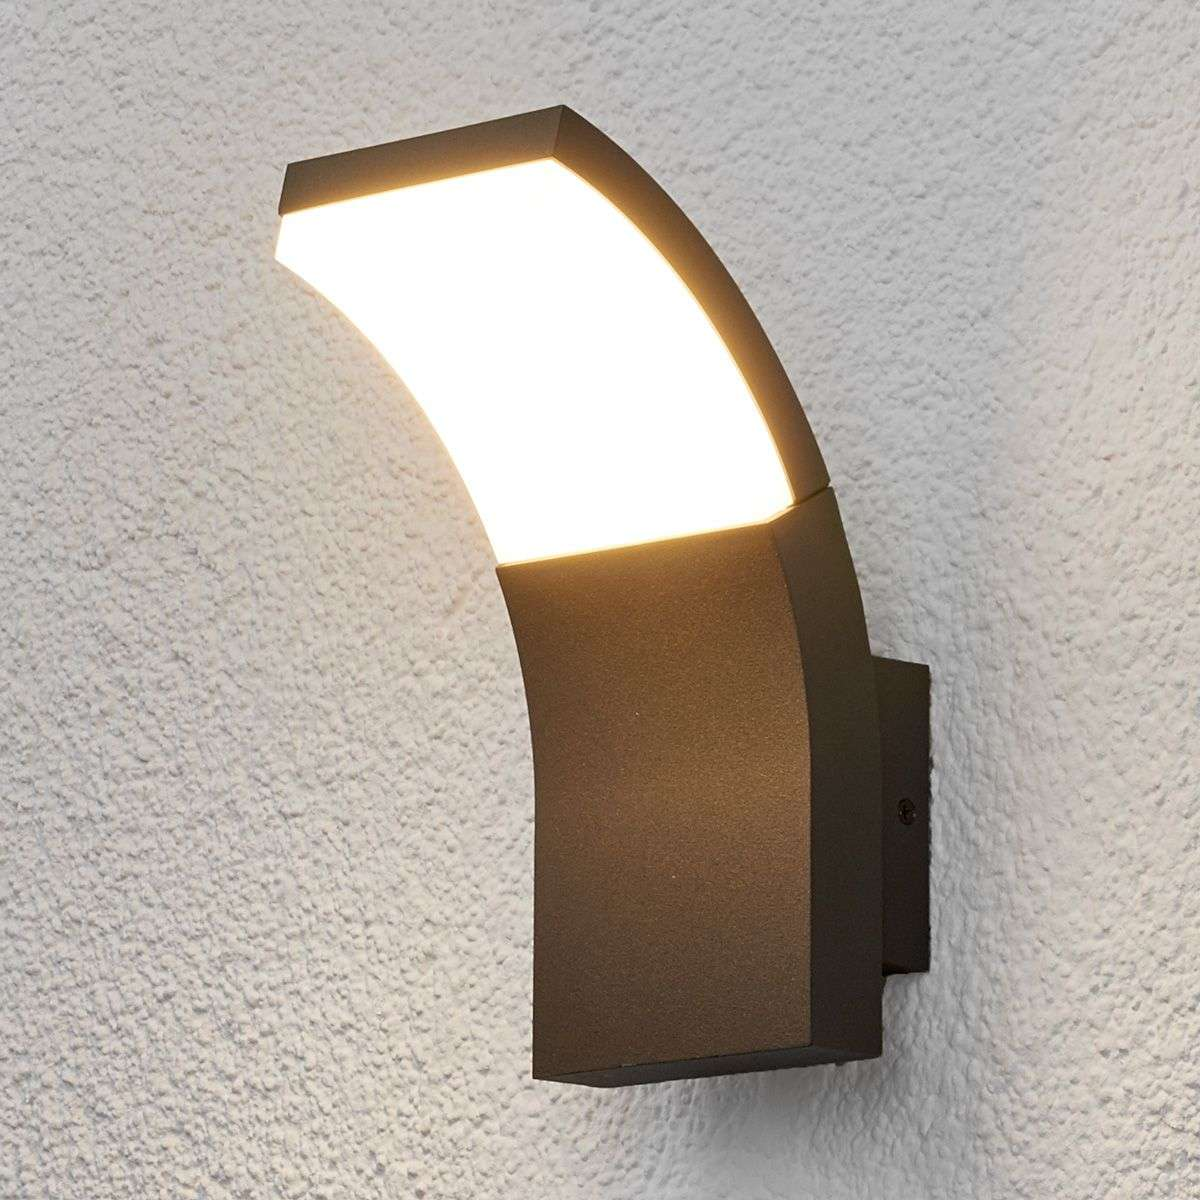 Led outdoor wall lights led outdoor wall light timm led lights led outdoor wall lights led outdoor wall light timm led lights mozeypictures Images